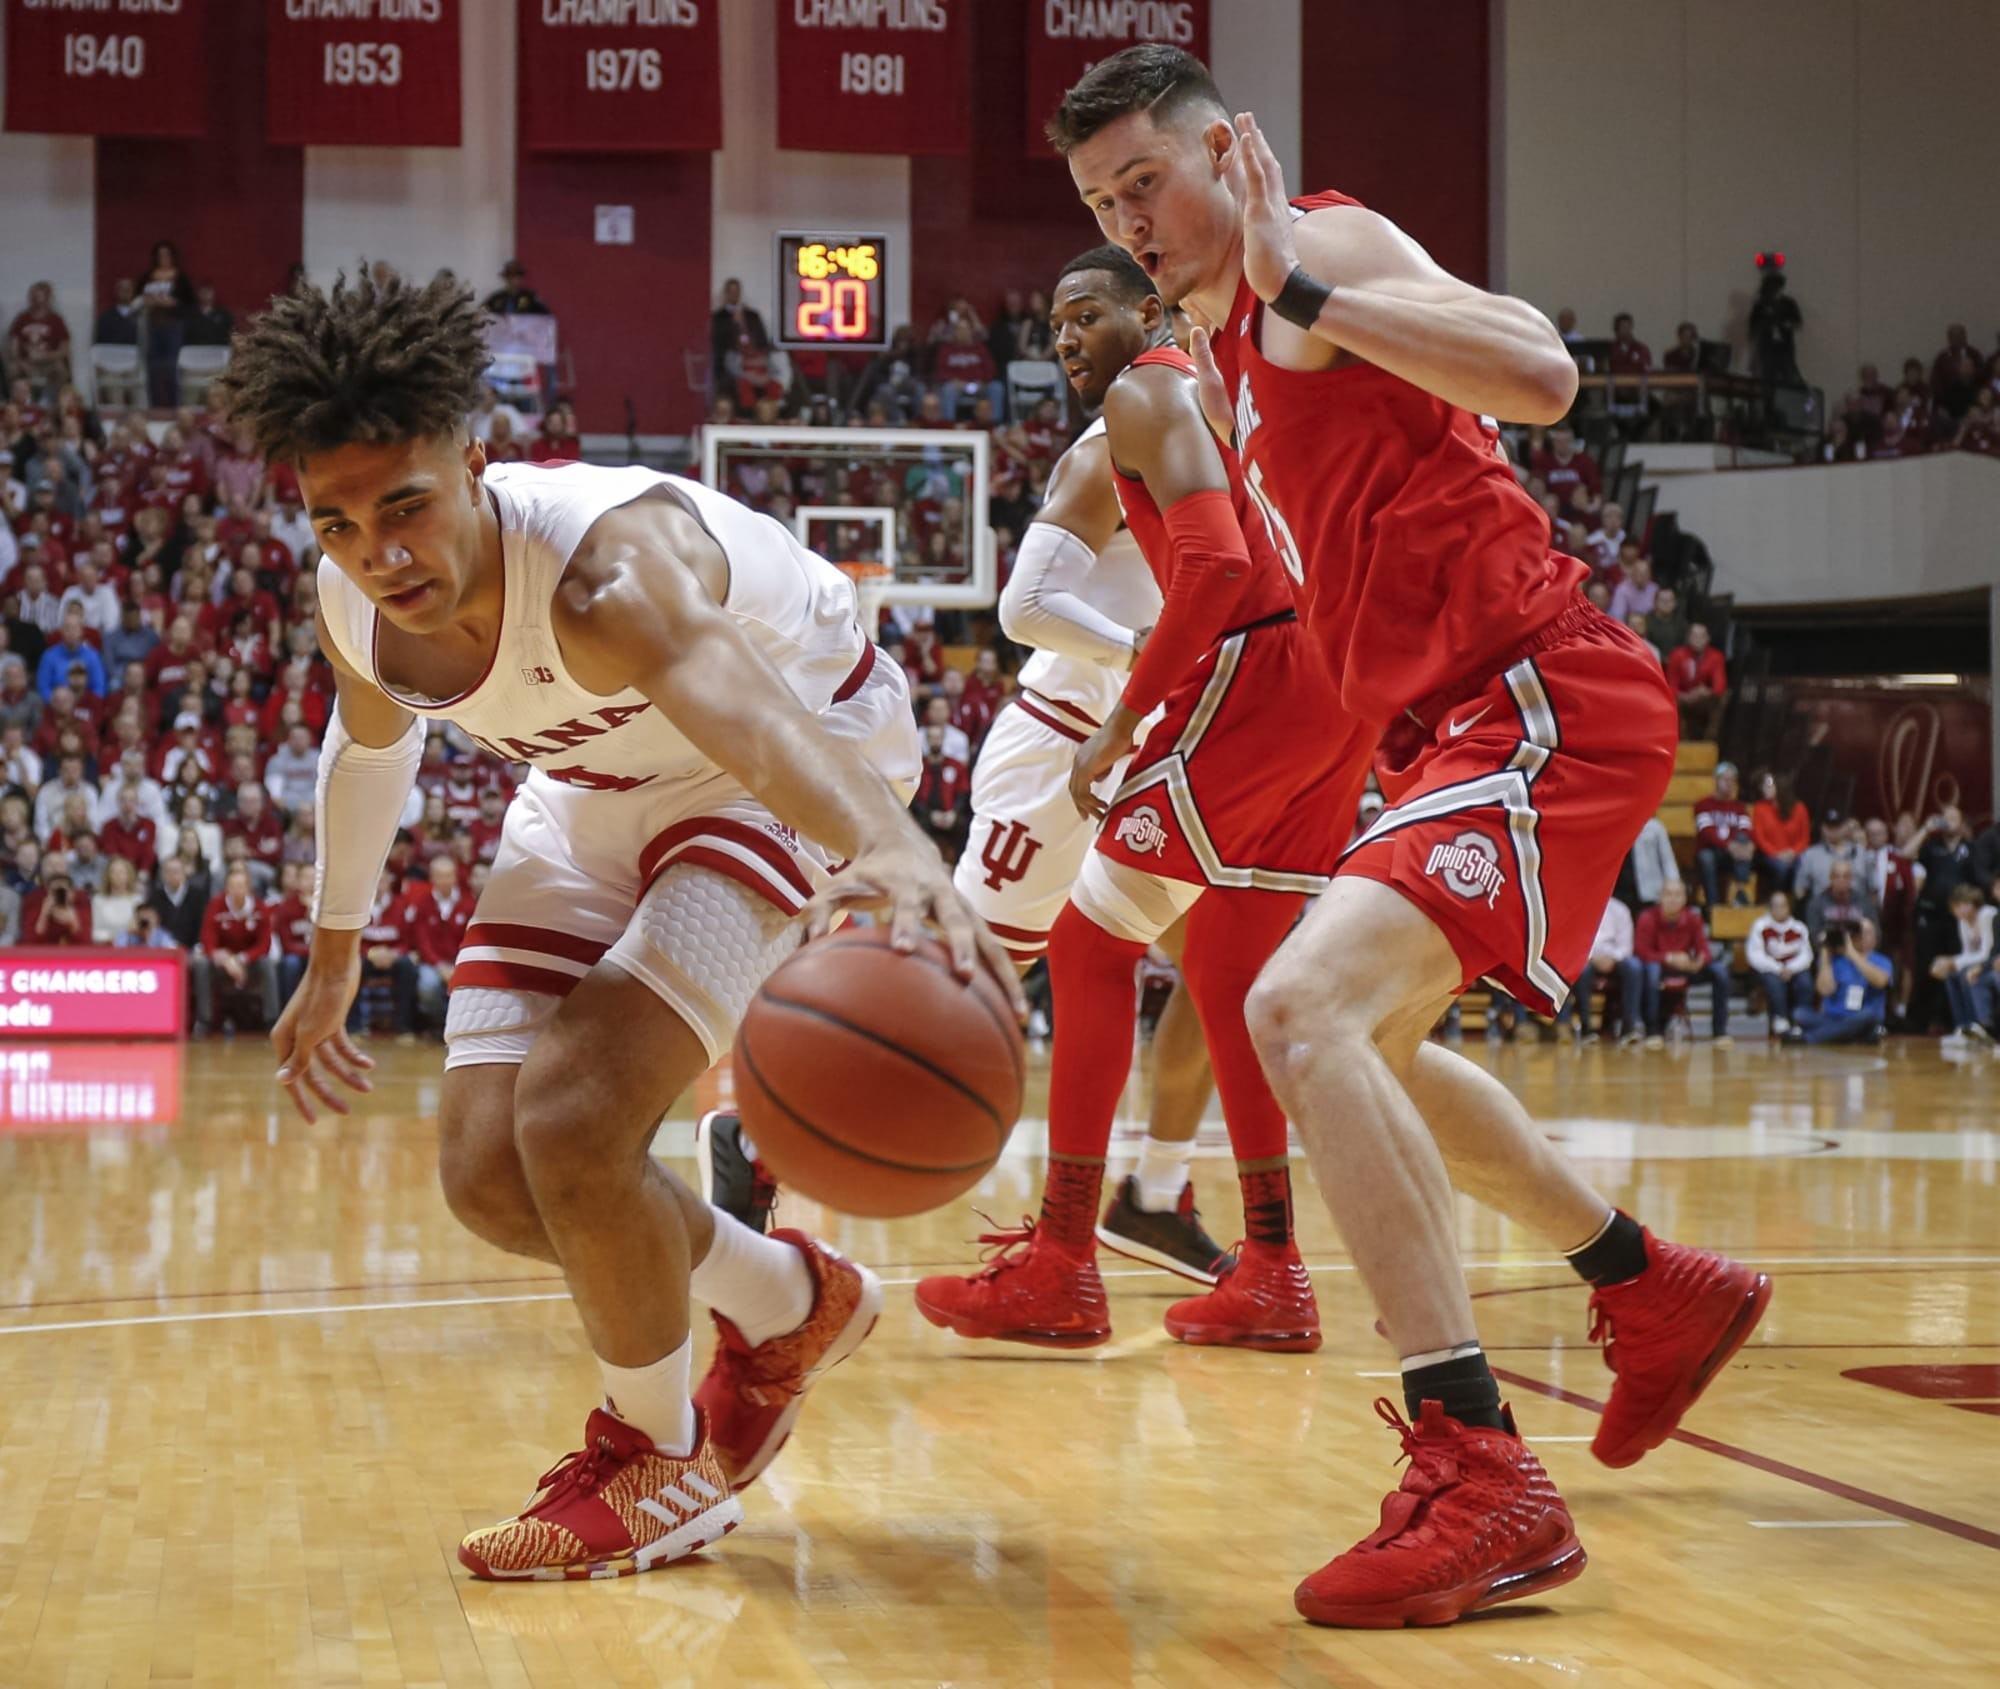 Indiana Basketball Vs Ohio State: Know Your Opponent, Preview, And Prediction-Indiana Rut Predictions 2021